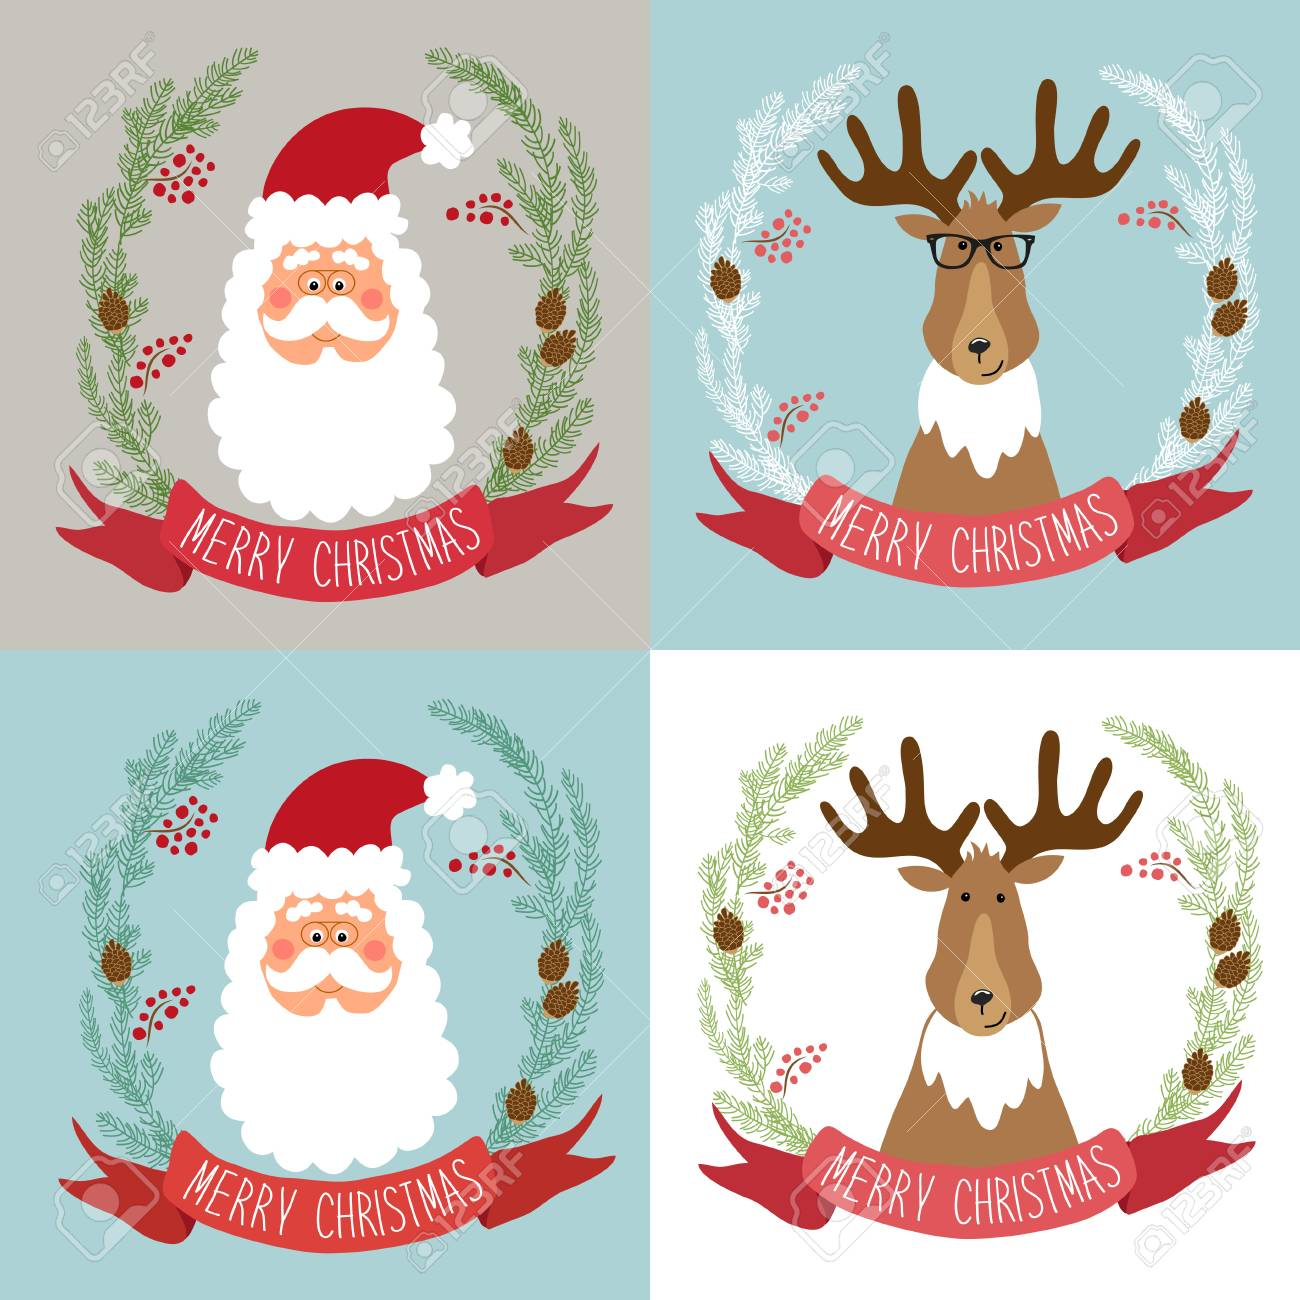 Cute Retro Christmas Cards With Funny Cartoon Characters Of Santa ...